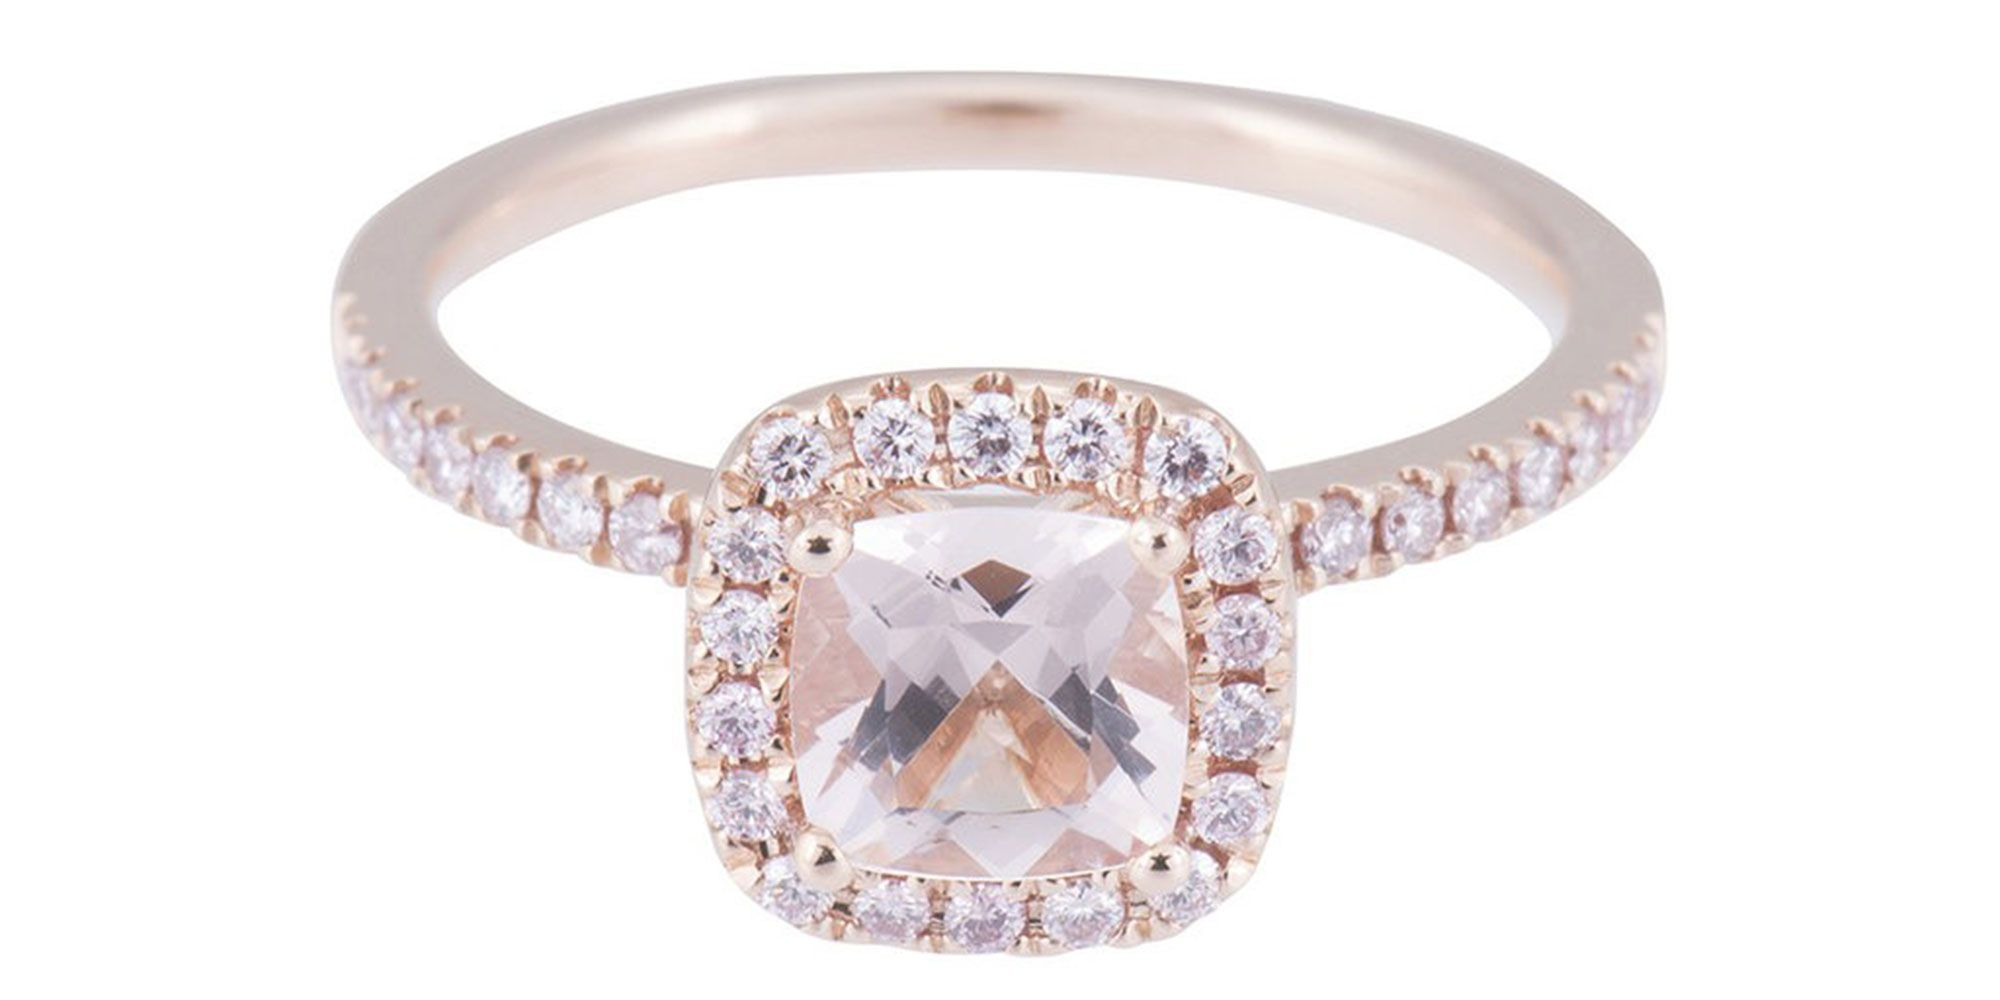 over million cnn the rings diamond value to soars light style recut in index auction pink promise article